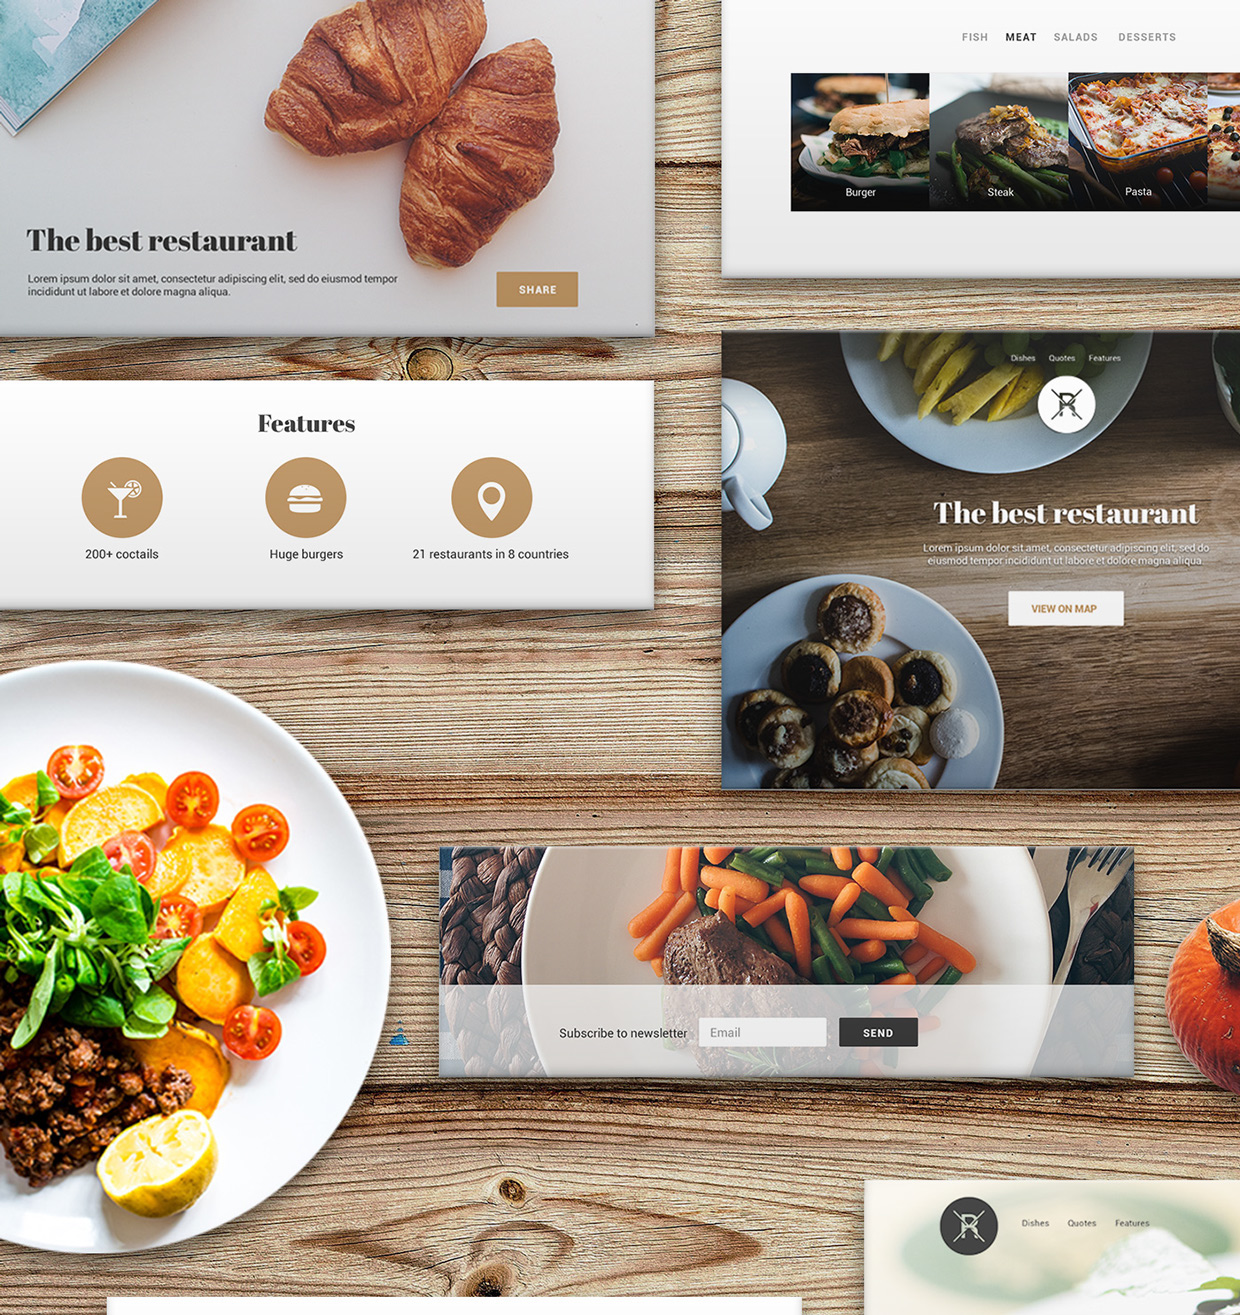 37 Free UX Psd Files of Restaurant Landing Page 2015  (4)